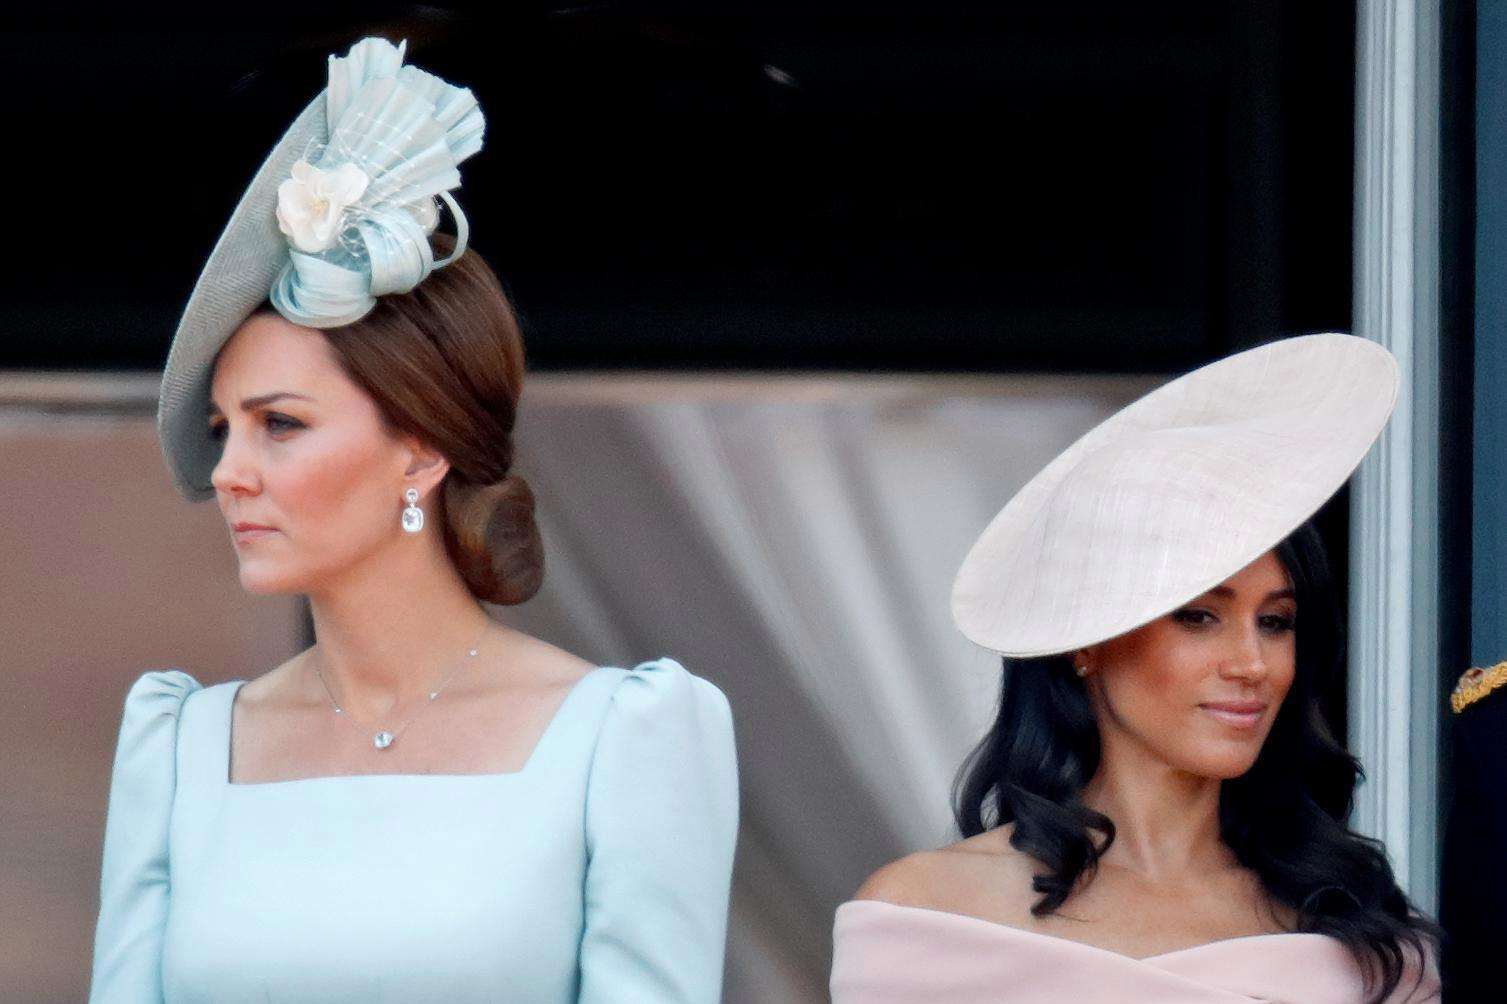 Meghan Markle and Kate Middleton risk 'devastating' future of monarchy if they don't 'heal major tiff', royal commentator says